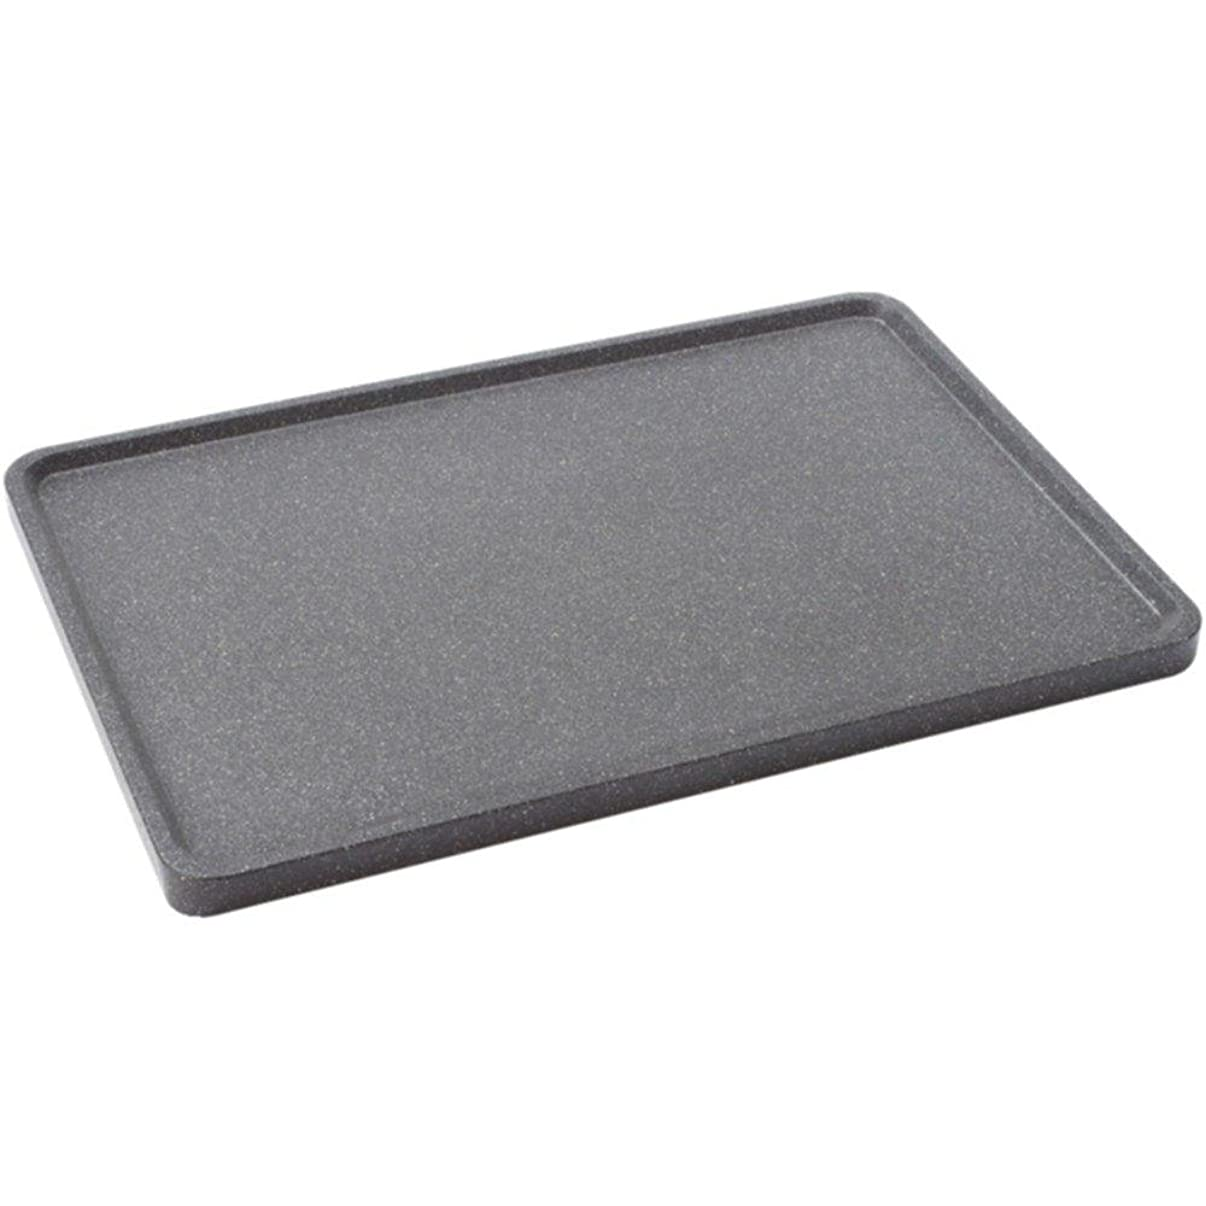 STARFRIT 060739-003-0000 THE ROCK(TM) 17.75 Reversible Grill/Griddle Pan consumer electronics